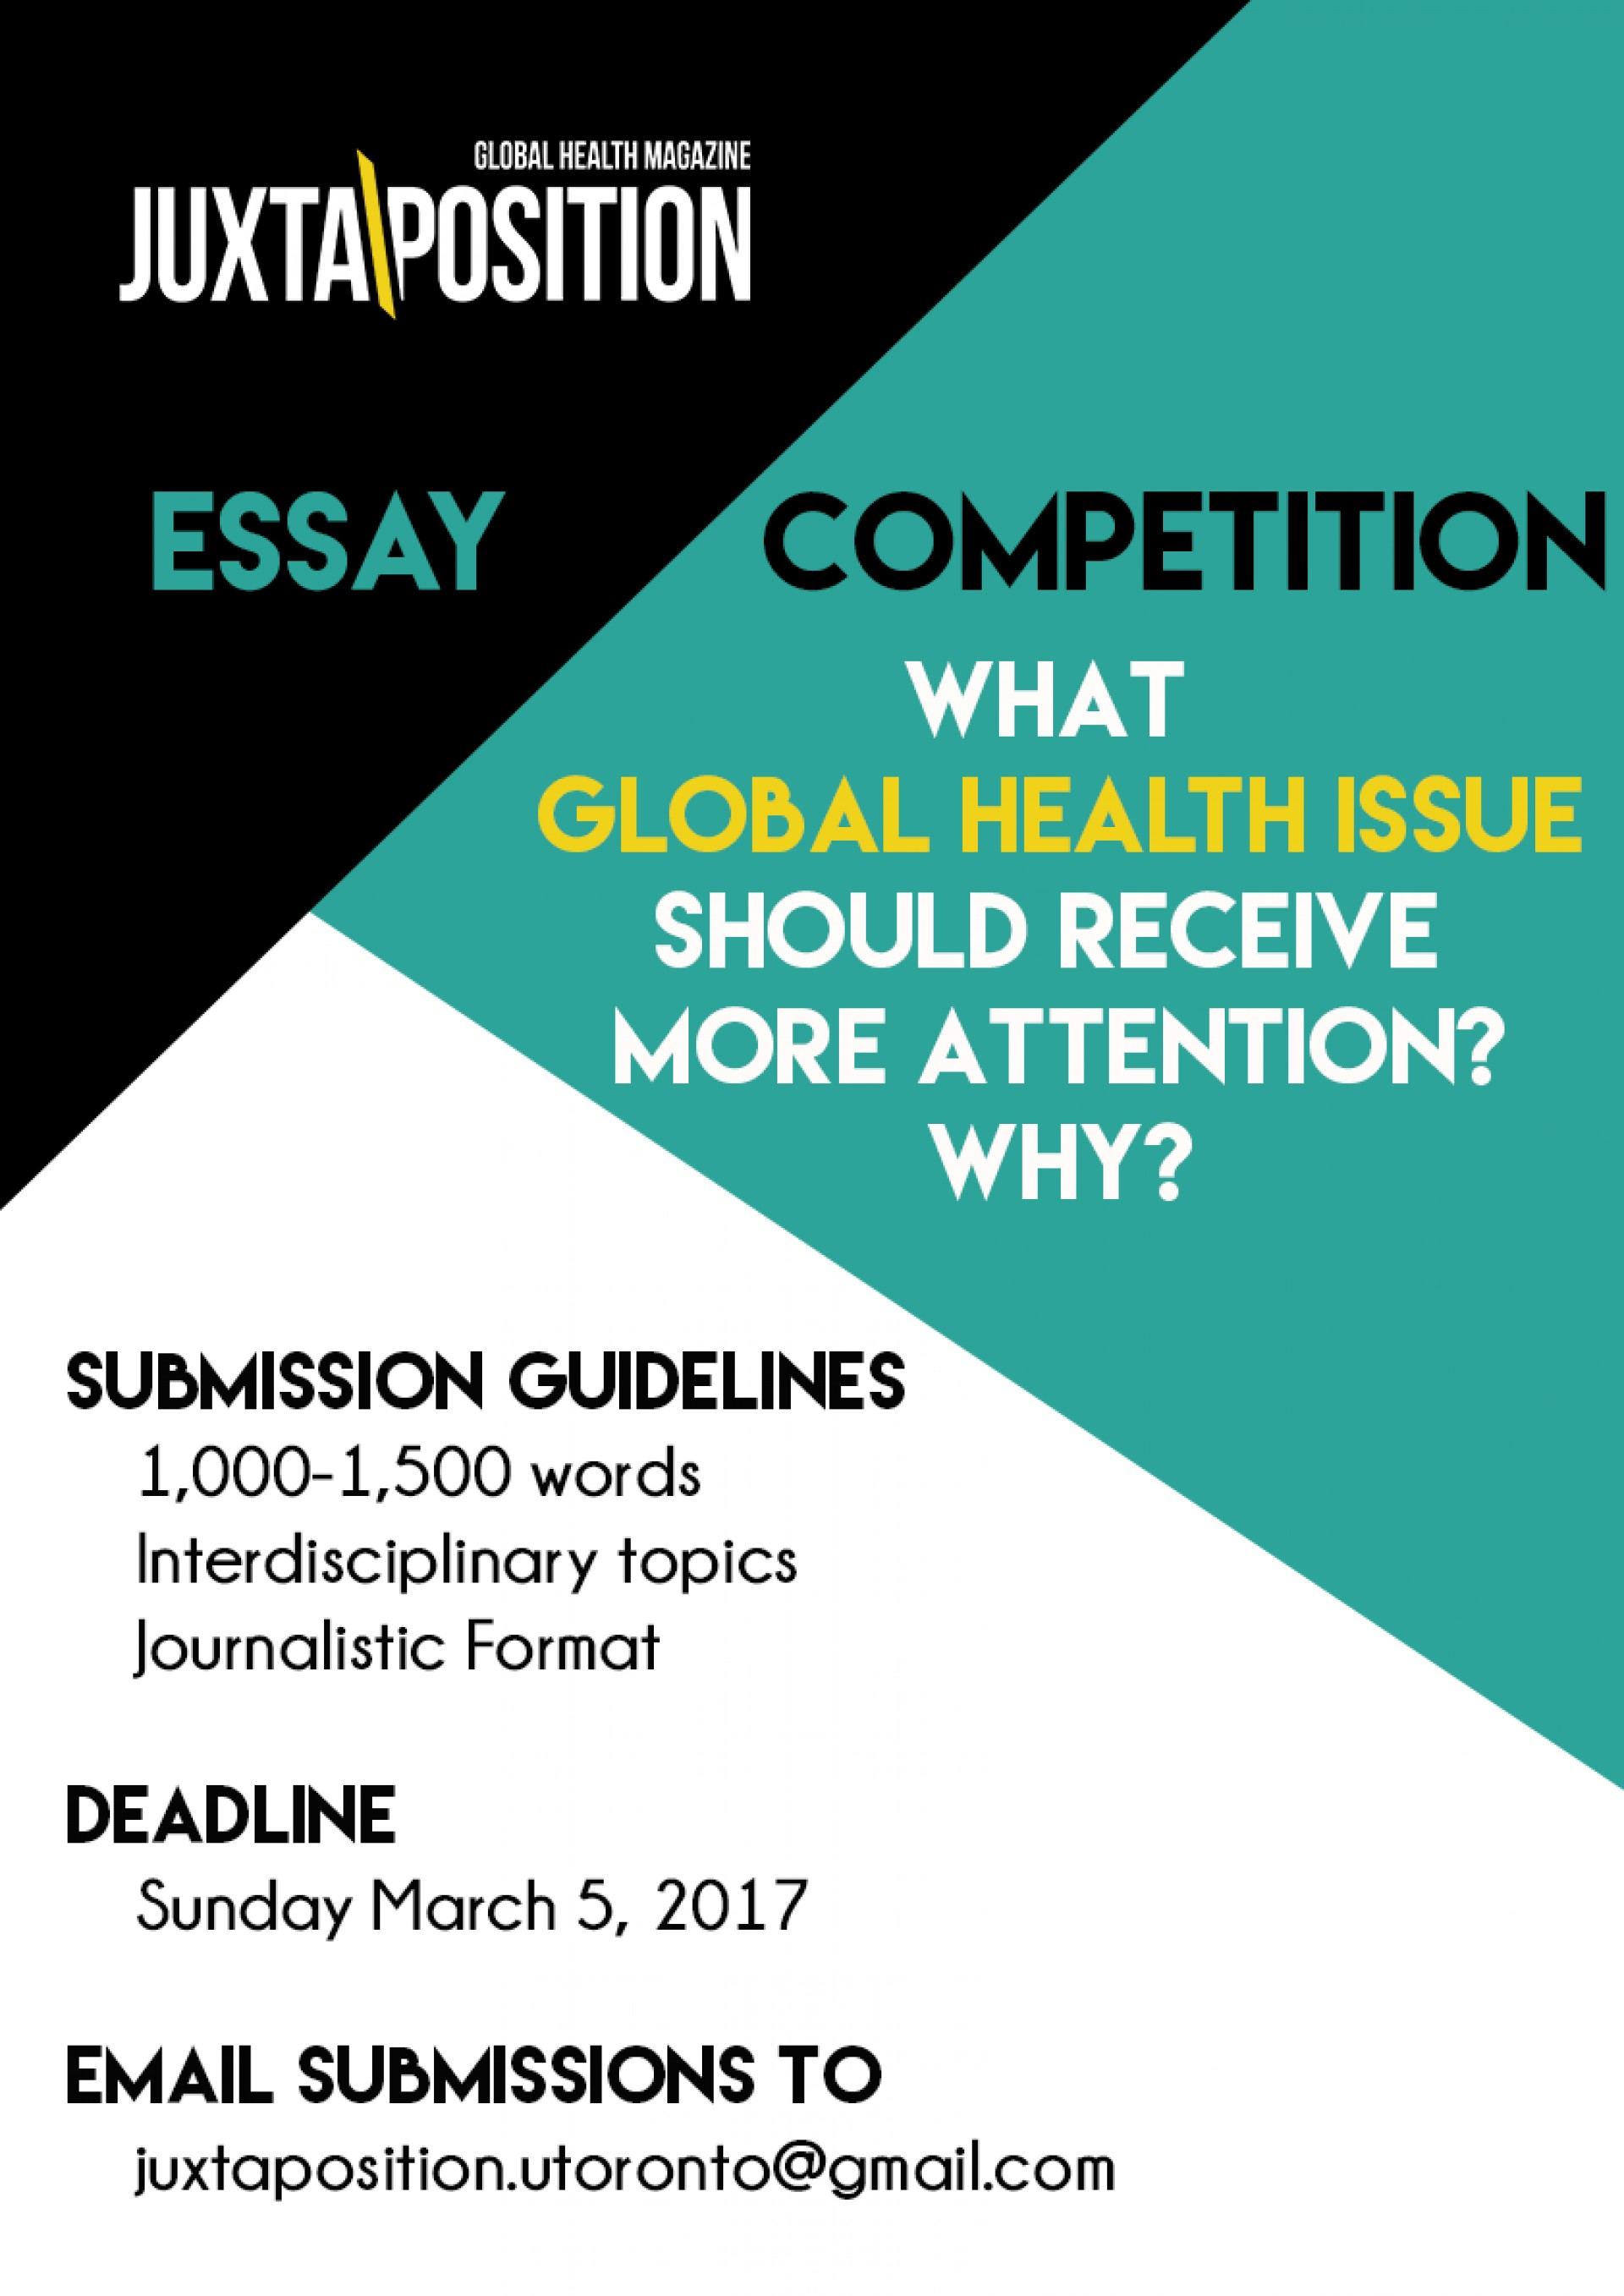 003 Essay Contest Essaycompposterw940 Staggering 2017 Online Competition India Writing High School Optimist International 1920